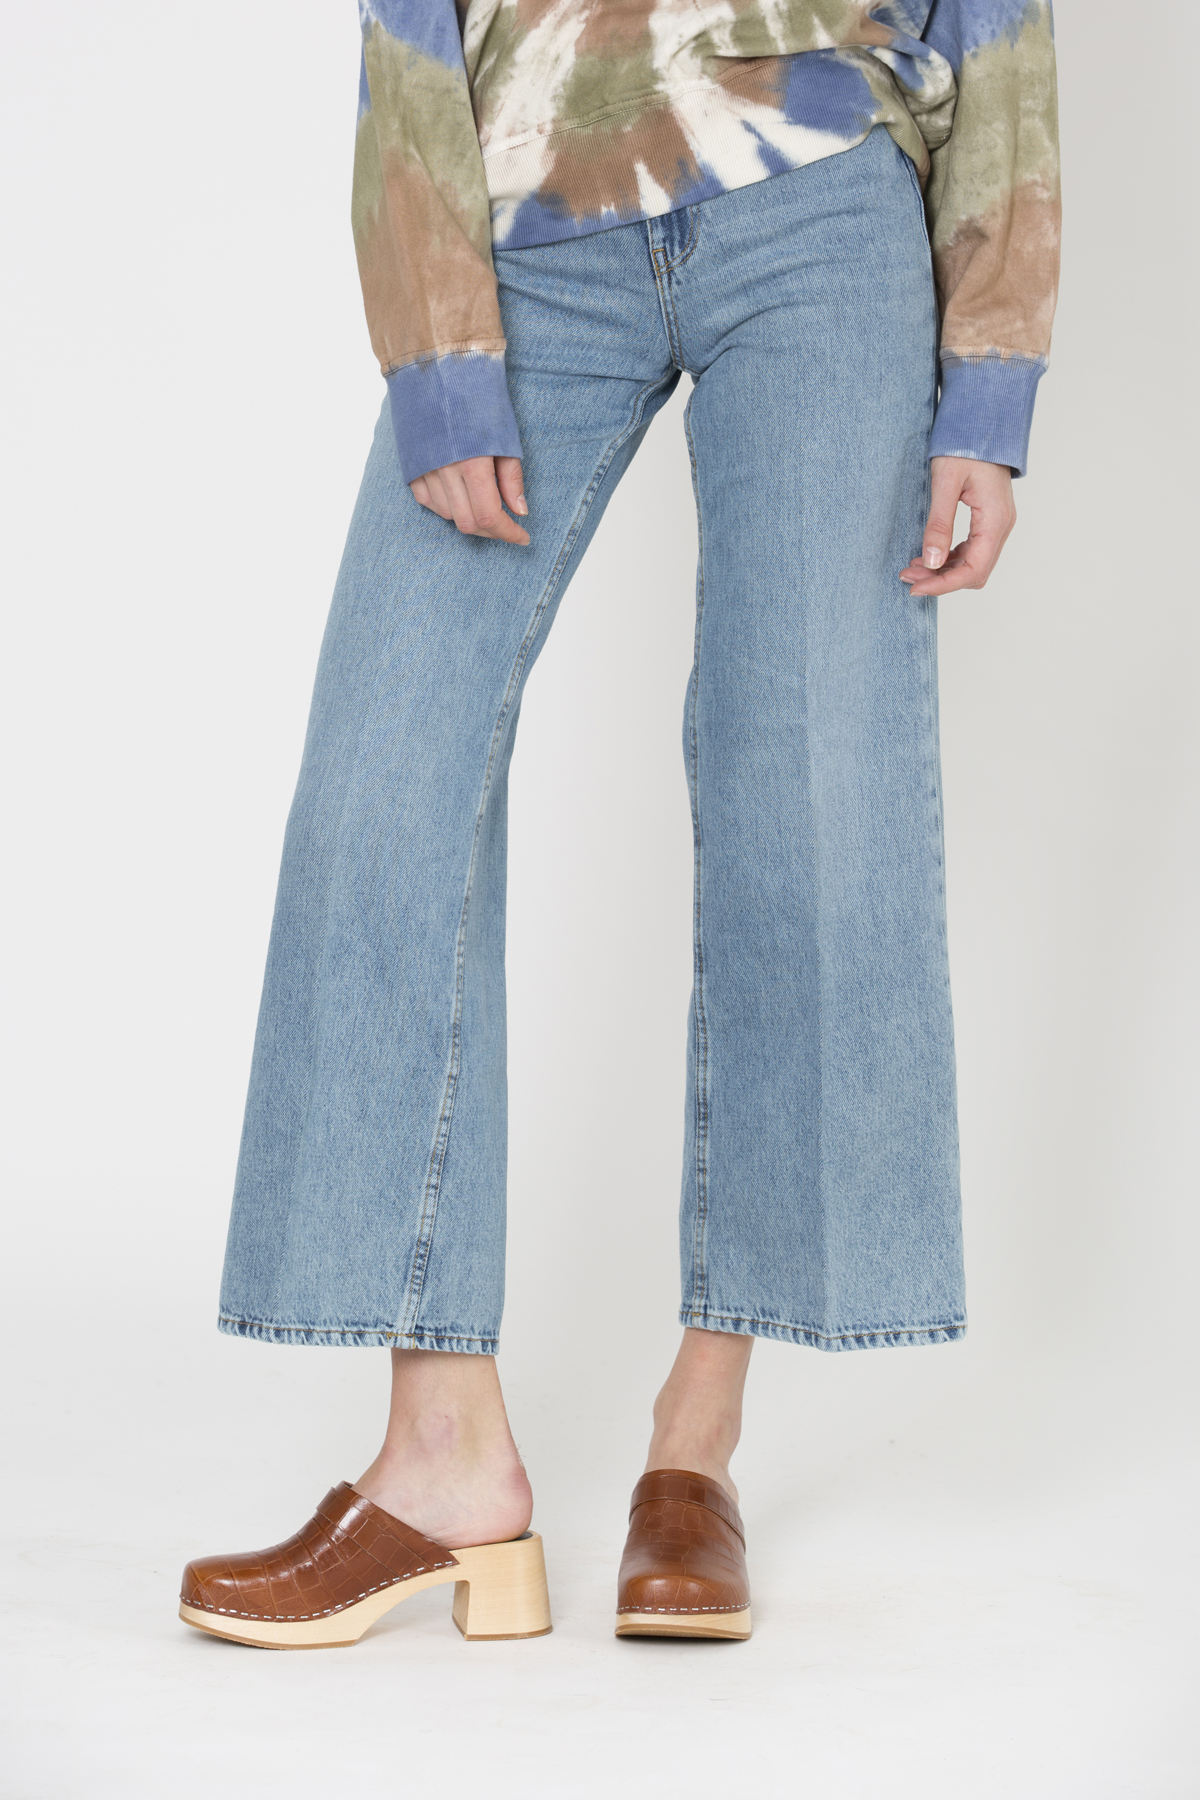 ellieh-washed-denim-jeans-reico-wide-high-waisted-matchboxathens